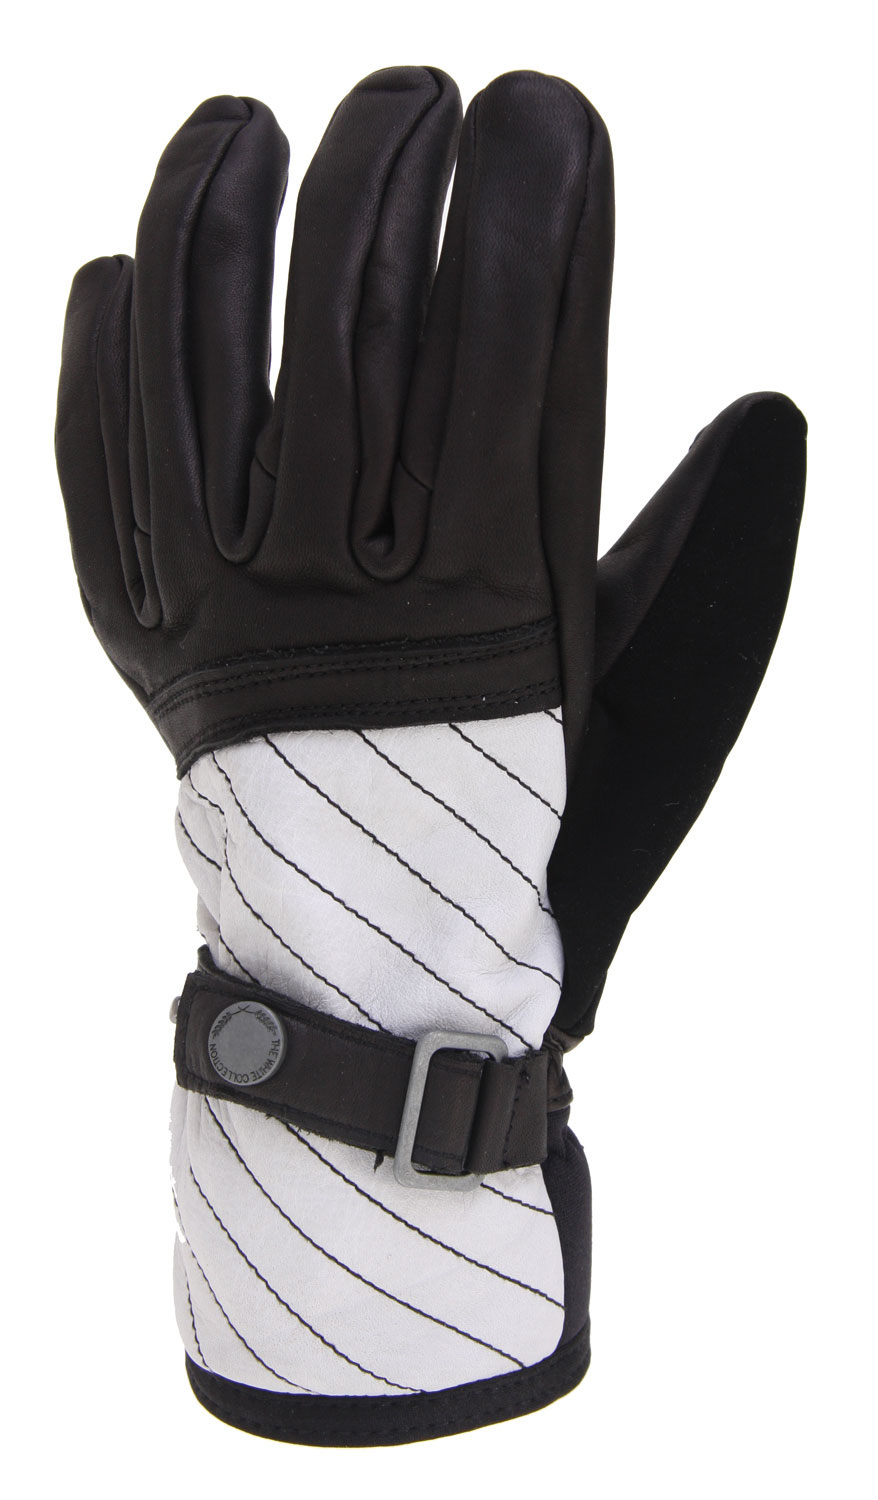 Snowboard Fight off the cold with Burton's The White Collection snowboard gloves. Water resistant rodeo leather outer provides superb comfort and head turning style, and the waterproof breathable insert keeps your hands bone dry without stifling them. Thermacore insulation holds up in the worst conditions, and pistol grip precurved fit means they're ready to go right away. Keep your hands warm and dry on the slopes, and get Burton's build quality and performance with The White Collection snowboard gloves.Key Features of the Burton White Collection Snowboard Gloves: Water-Resistant Rodeo Leather Stretch Shell Insane Membrane 2.0 Waterproof/Breathable Insert Thermacore Insulation 220G Fixed Fleece Lining Rodeo Leather Palm Pistol Grip Pre-Curved Fit - $33.56